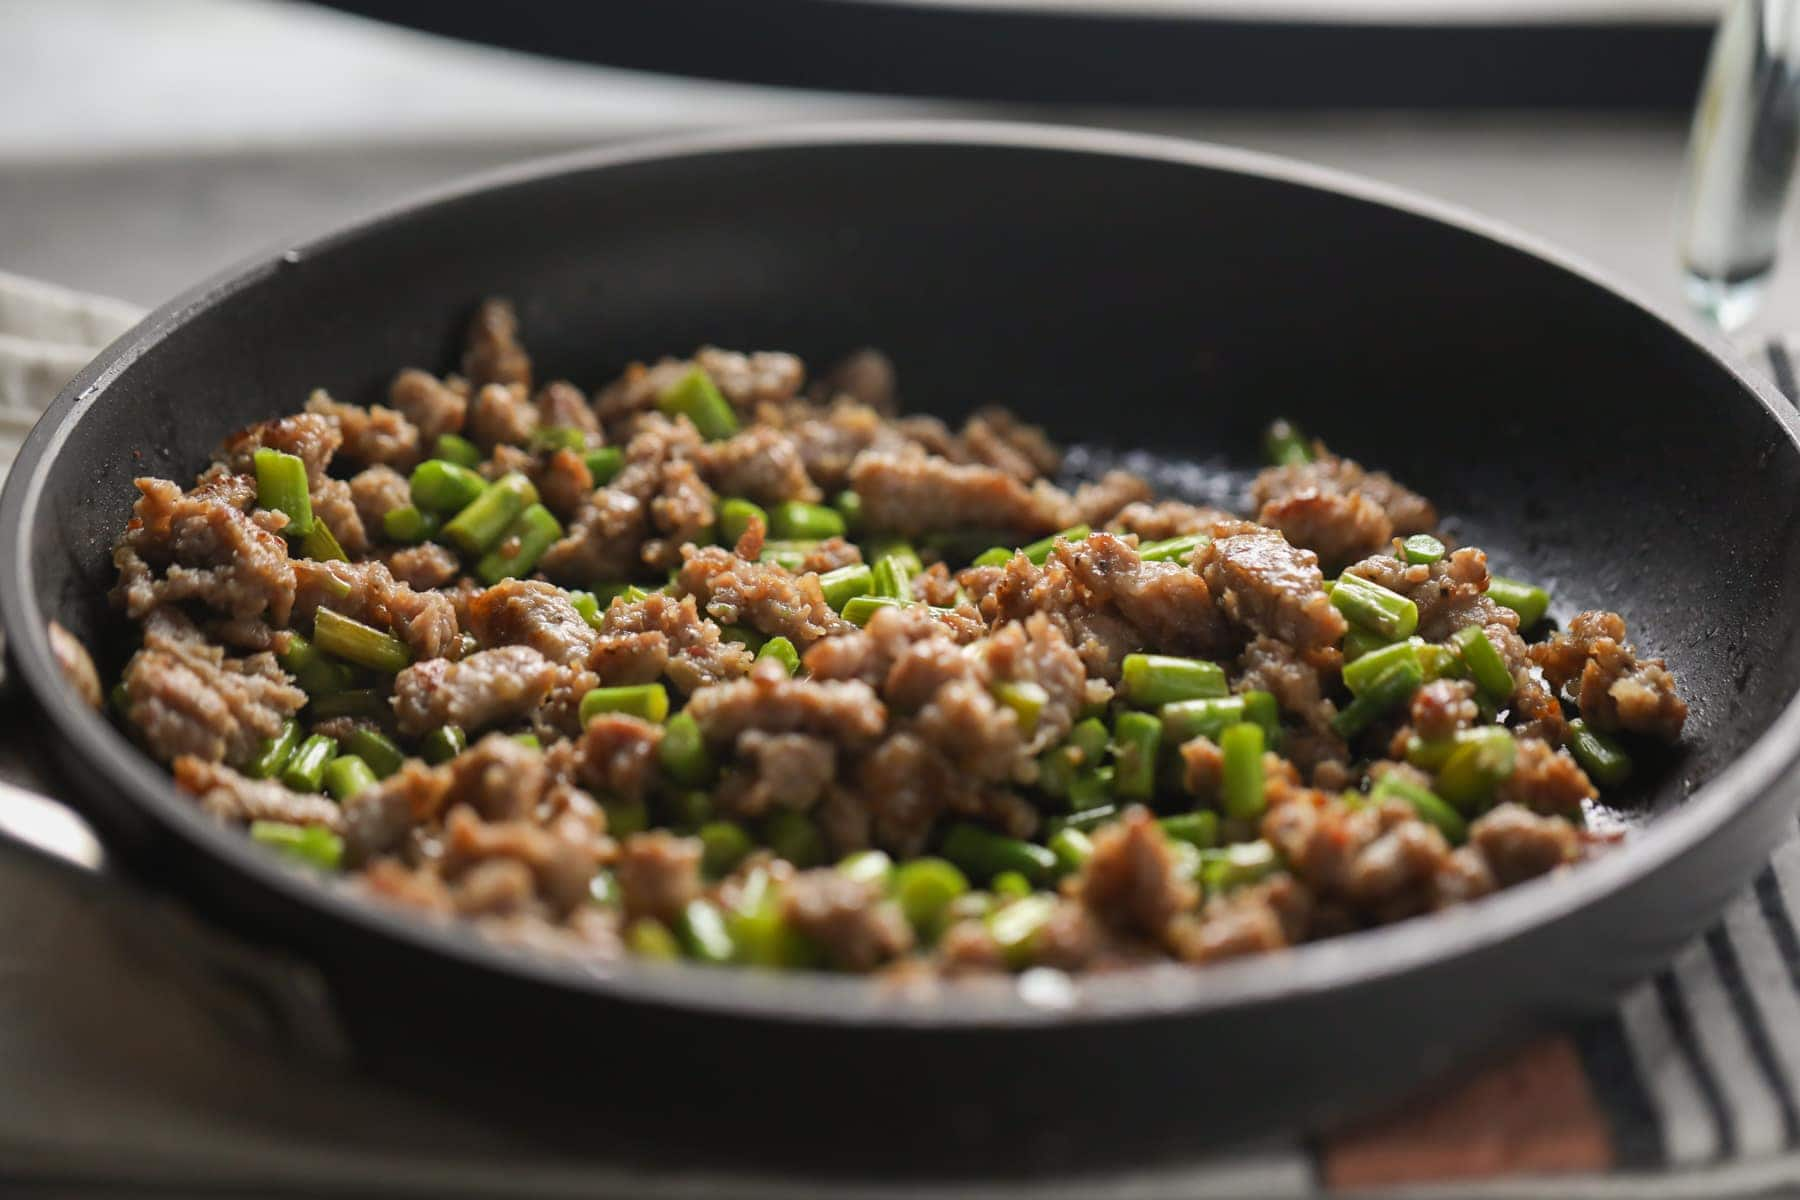 breakfast sausage and asparagus in a pan